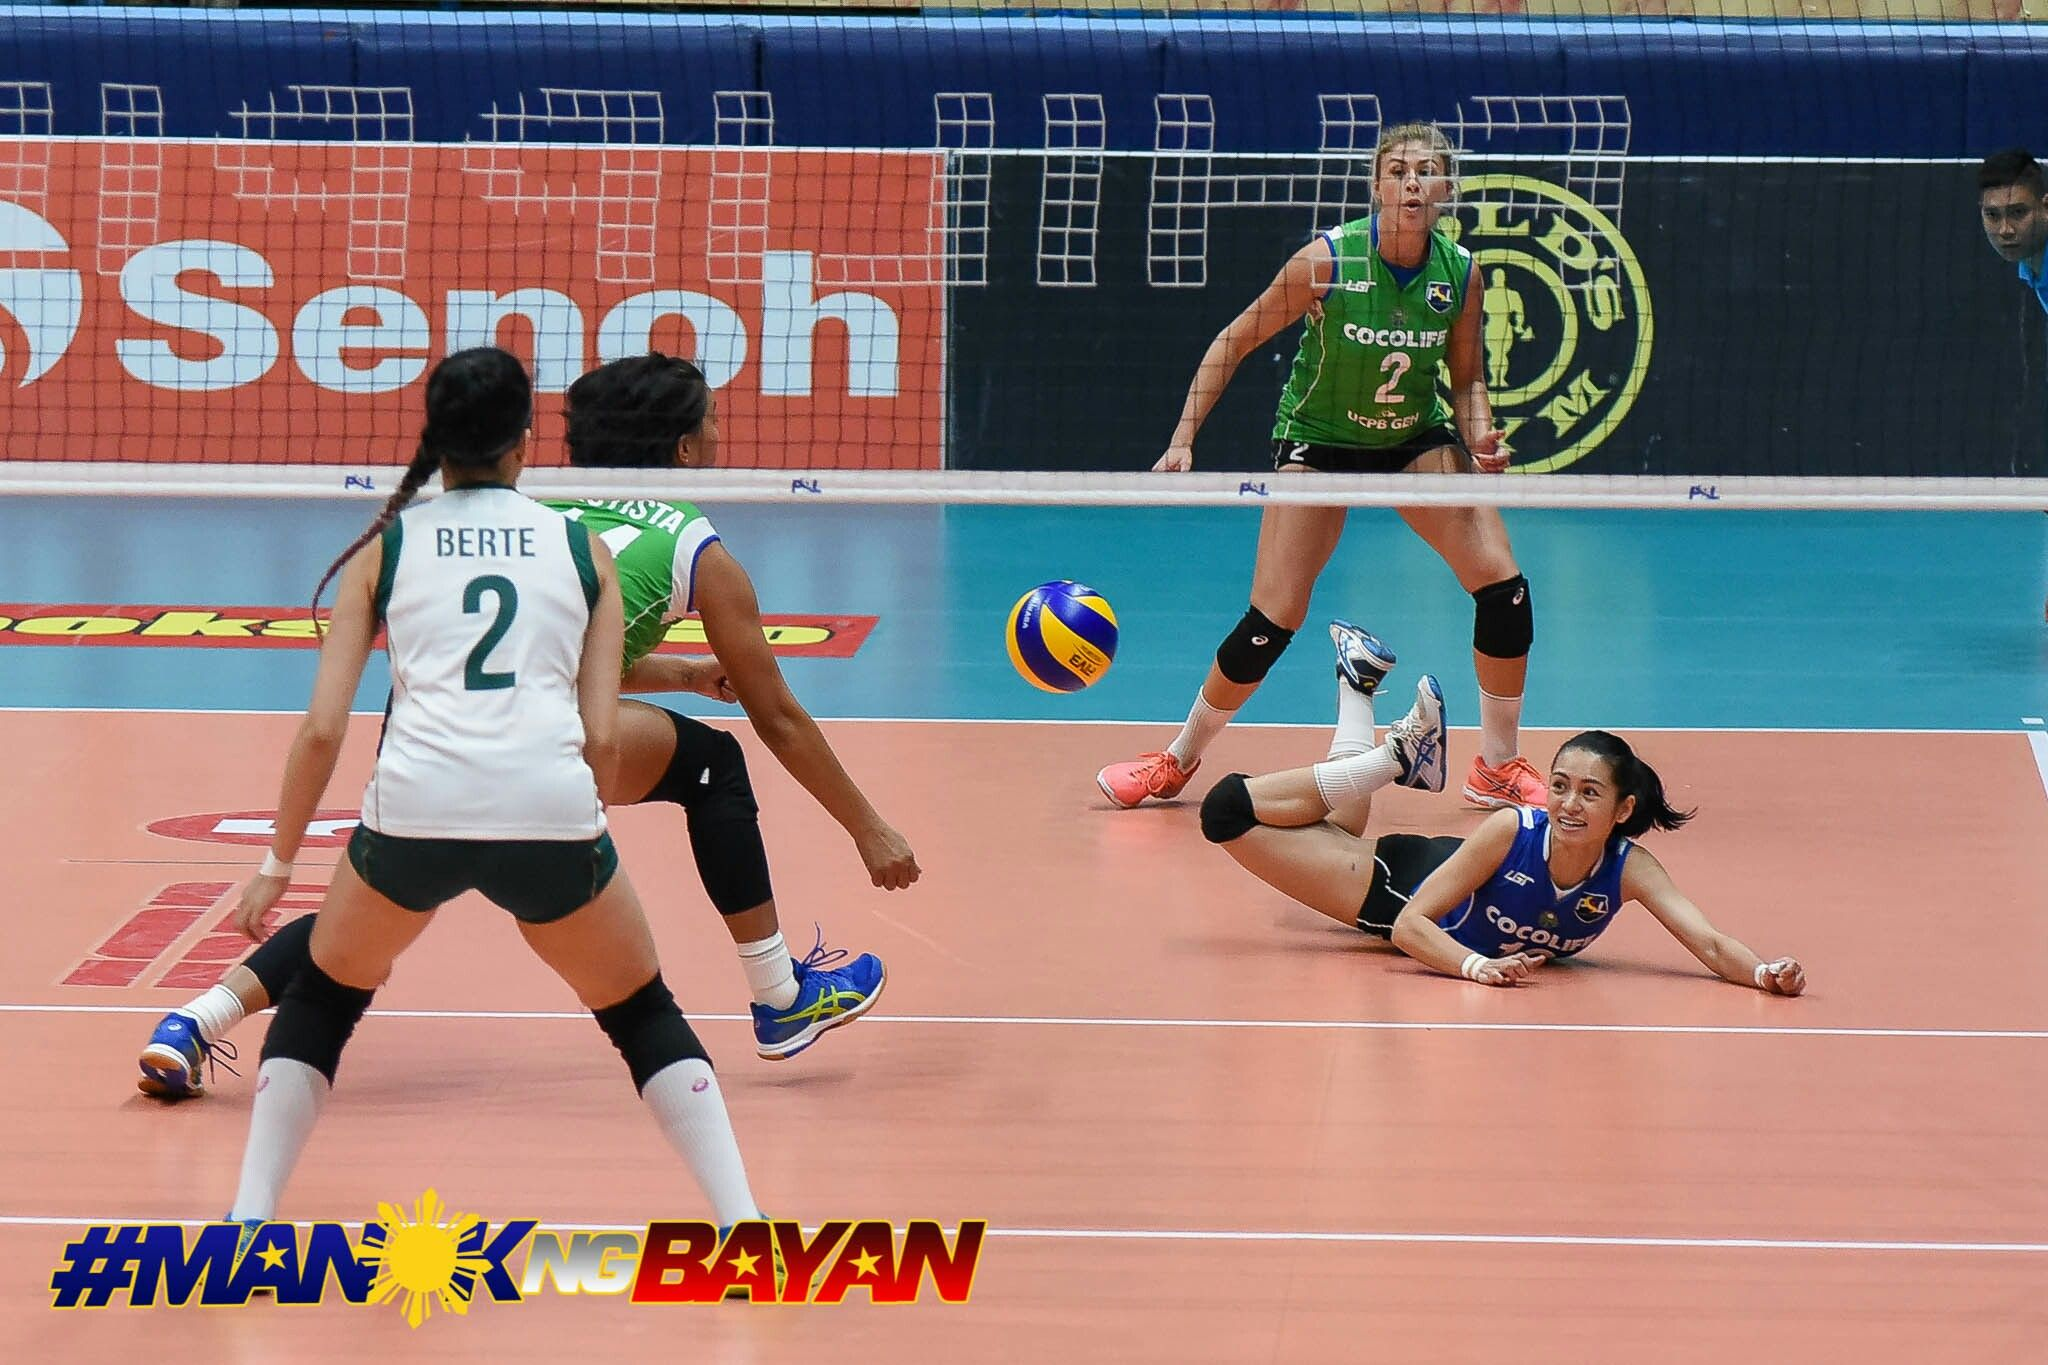 Pin By Alain Keith Cabardo Daguio On Volleyball 2018 2020 Psl Grand Prix Invitational Basketball Court Volleyball Grand Prix